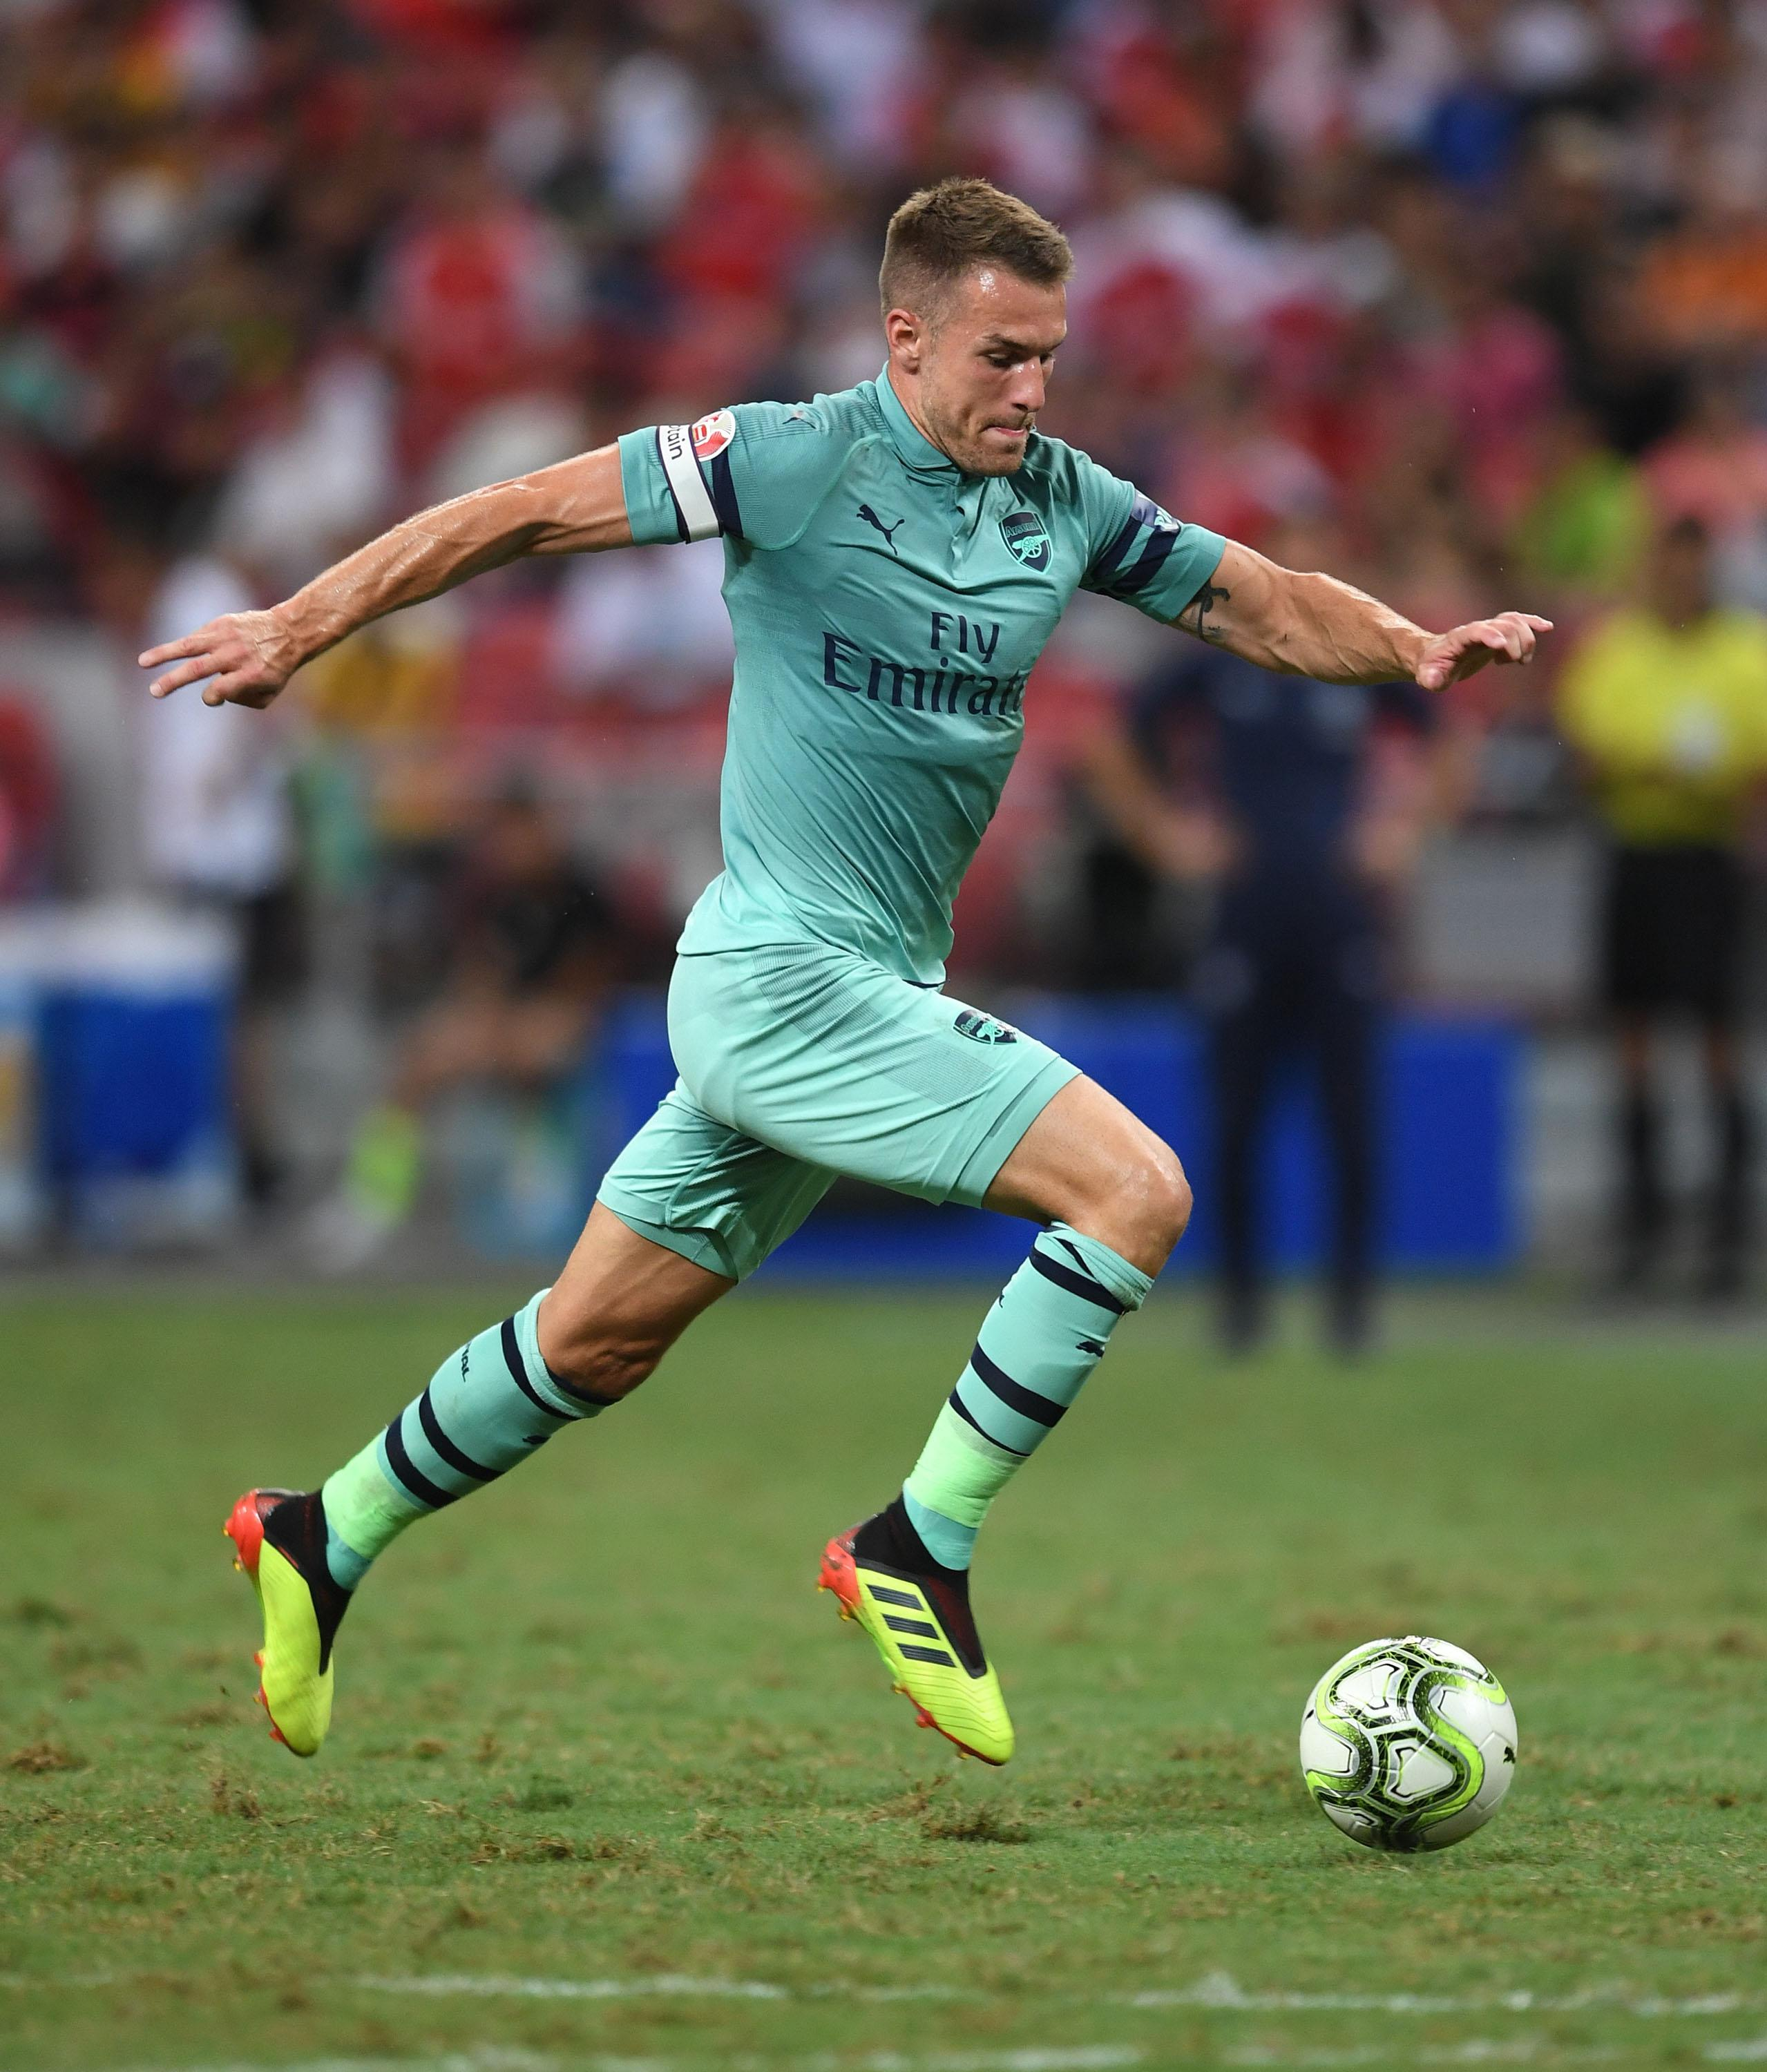 Ramsey has been linked with a move to Chelsea, but could head to Spain if Arsenal get Ousmane Dembele